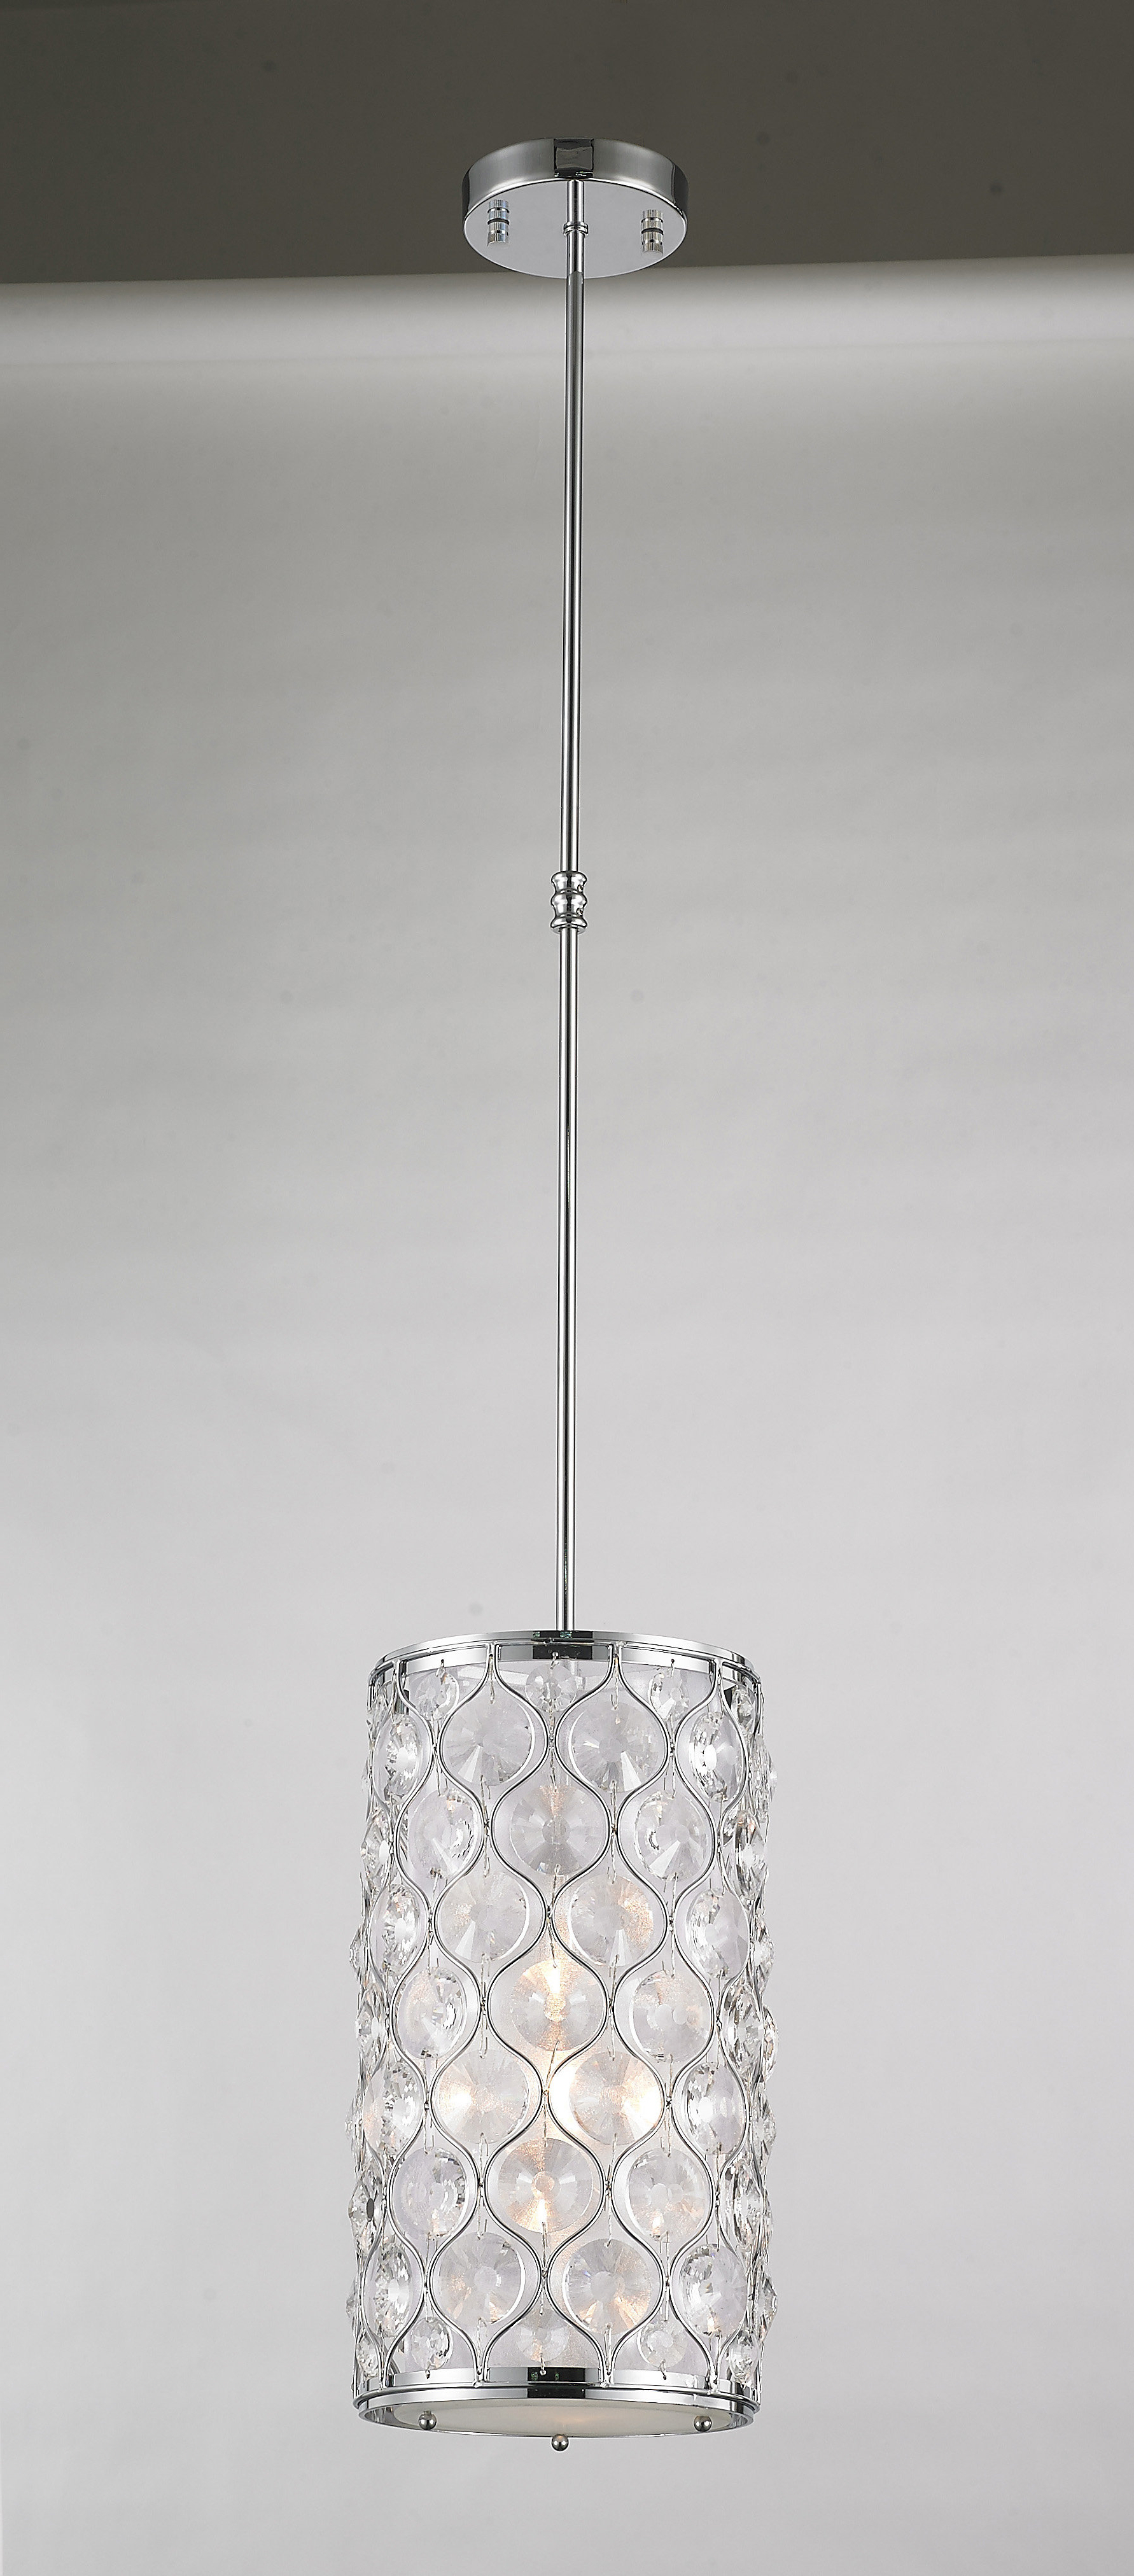 Adonis 1 Light Single Cylinder Pendant With Regard To Newest Hurst 1 Light Single Cylinder Pendants (View 3 of 25)